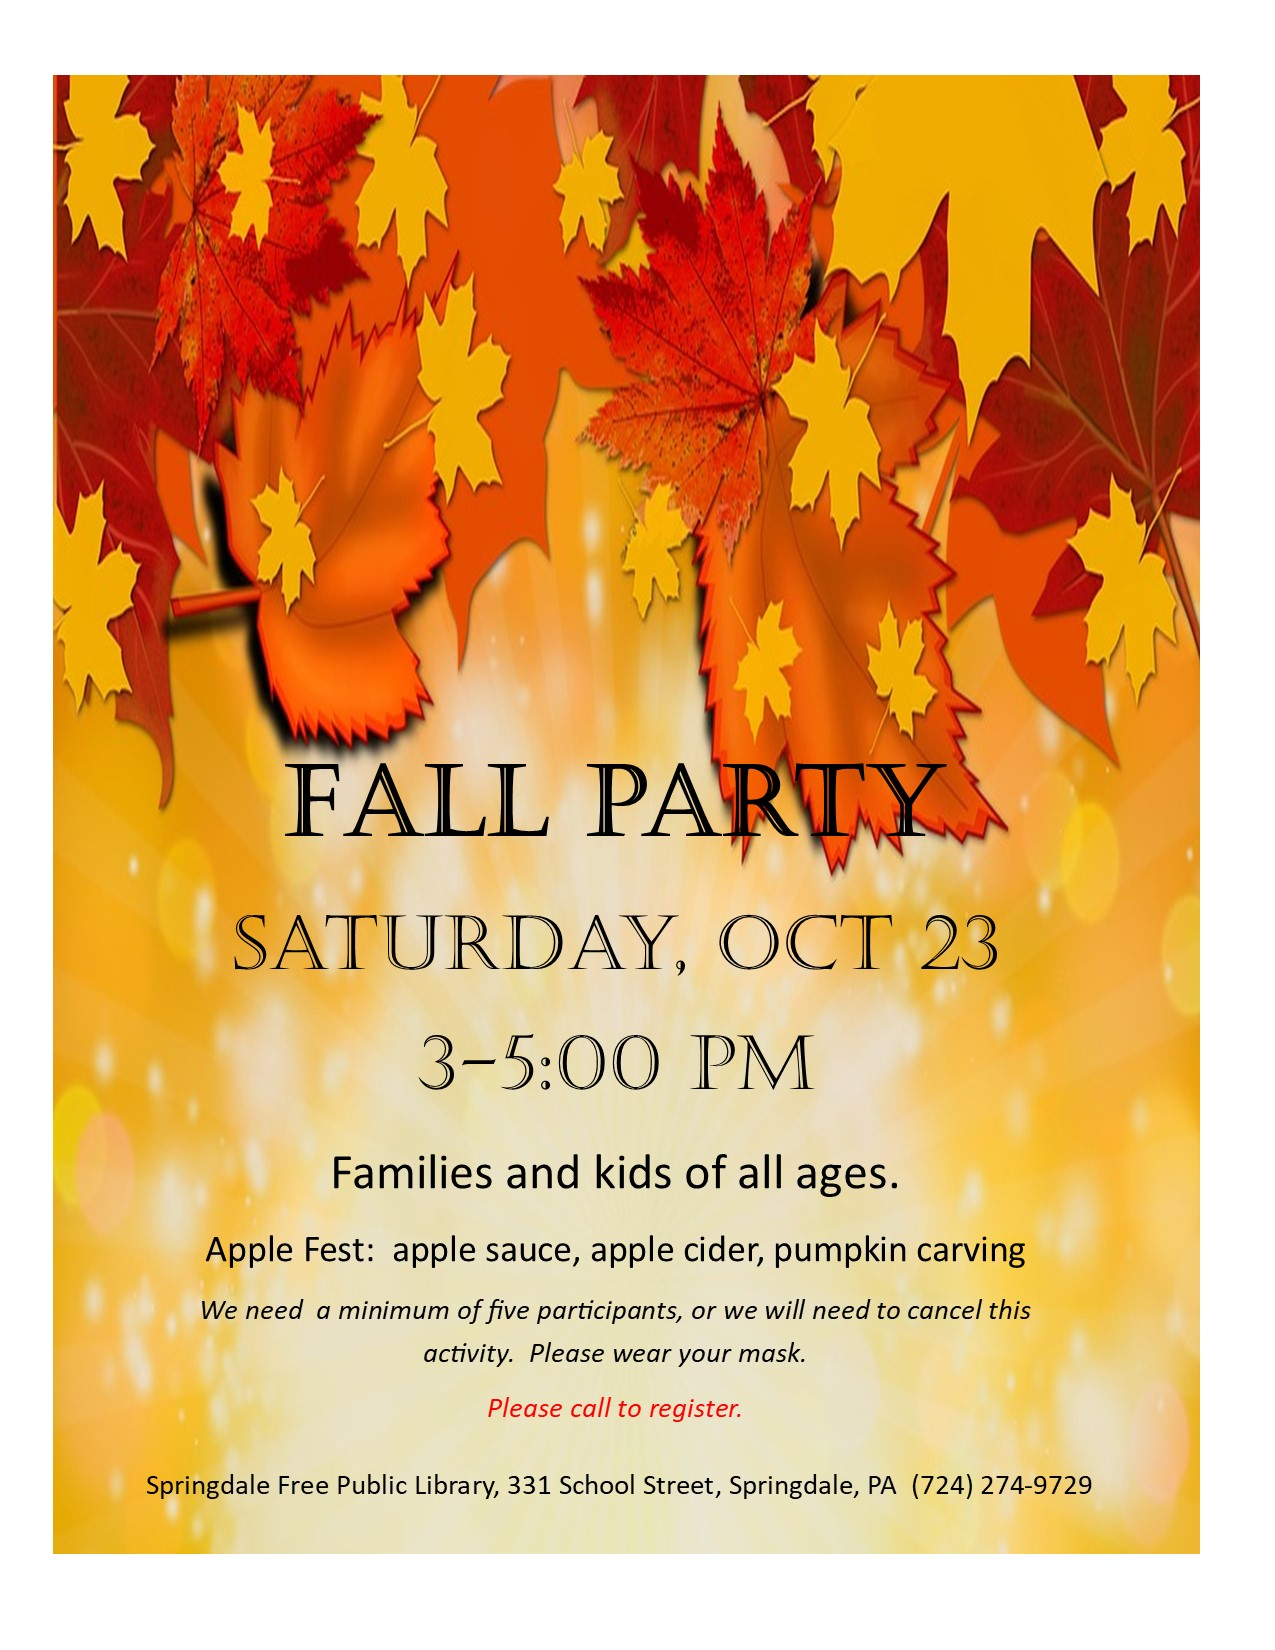 Fall Party! Space is limited, call to register.